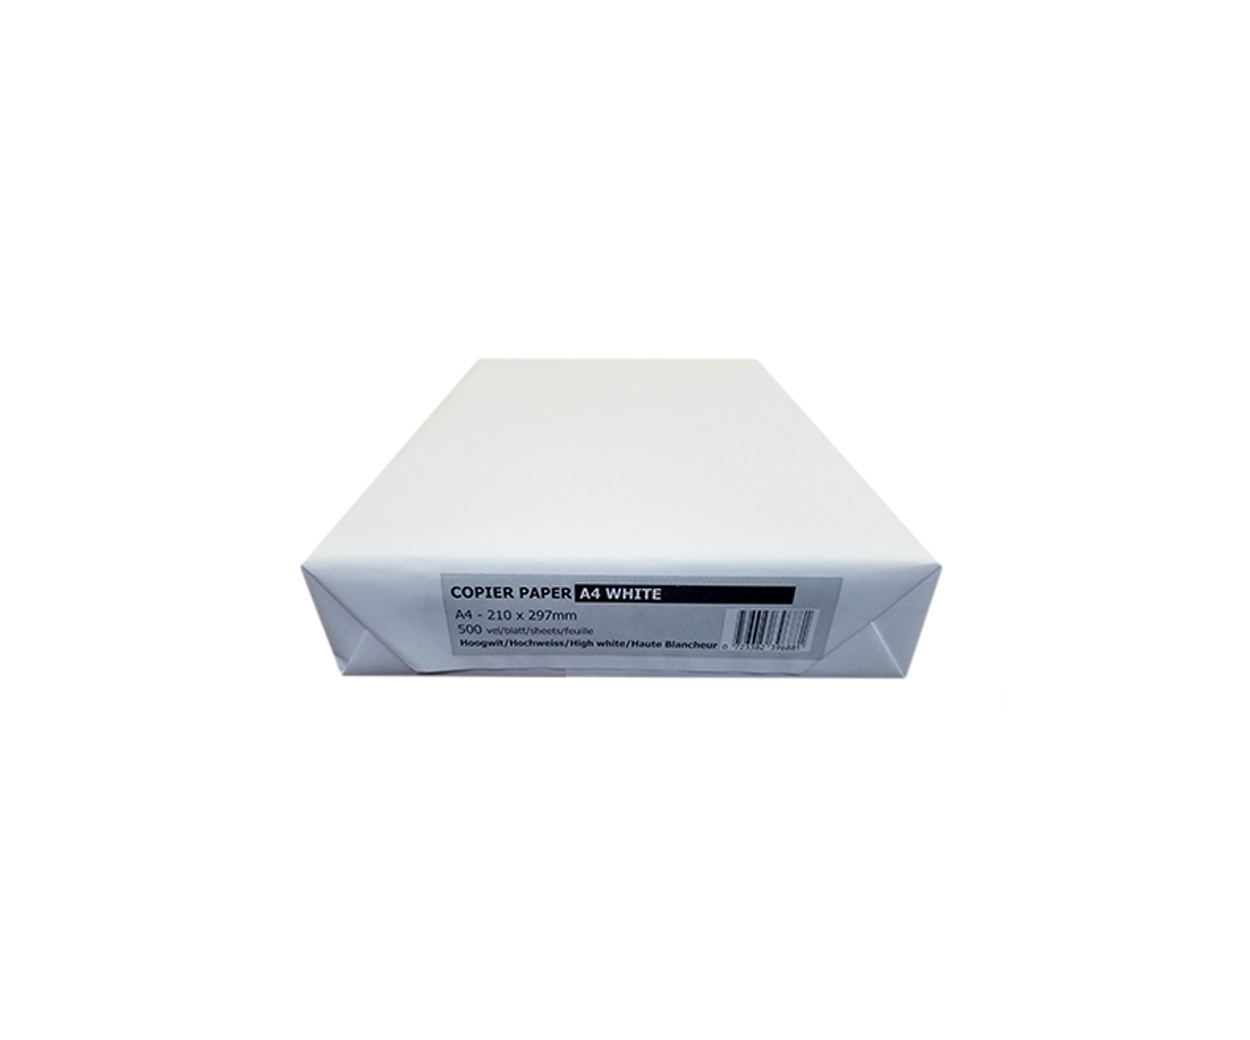 A4 White Copier Paper - Pack of 500 (5 reams)